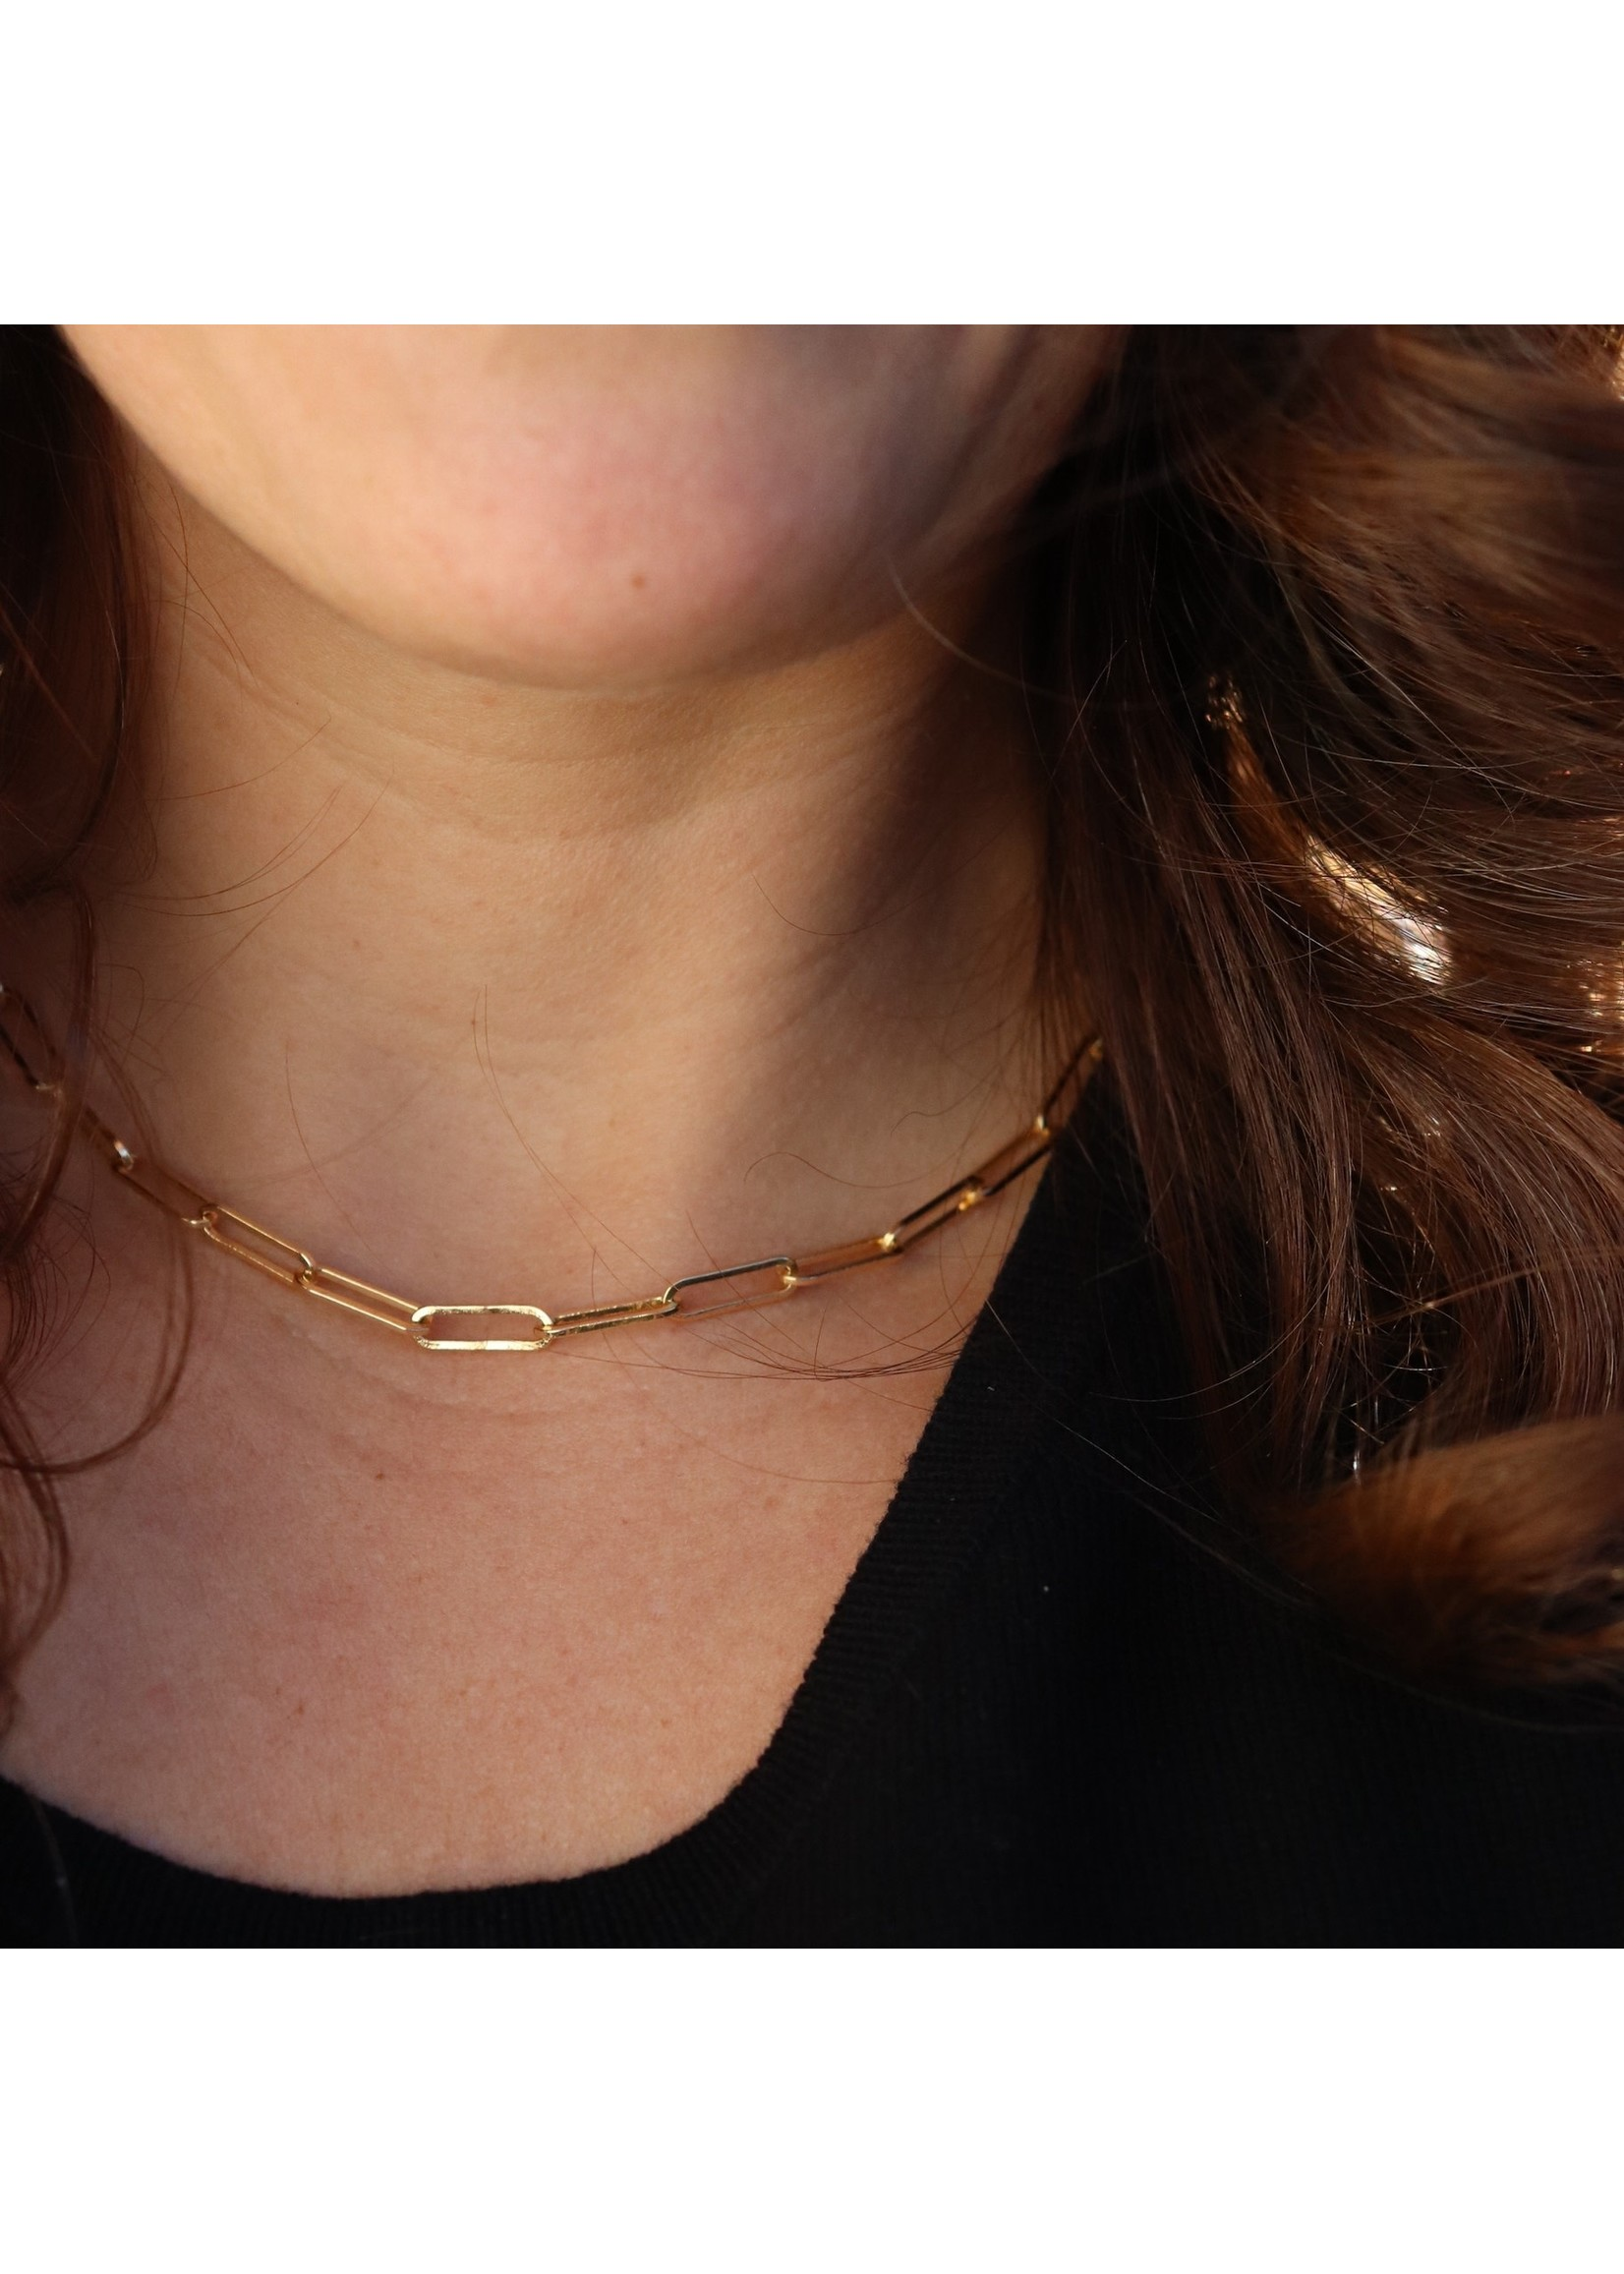 Cedar and Cypress Designs Chained Necklace